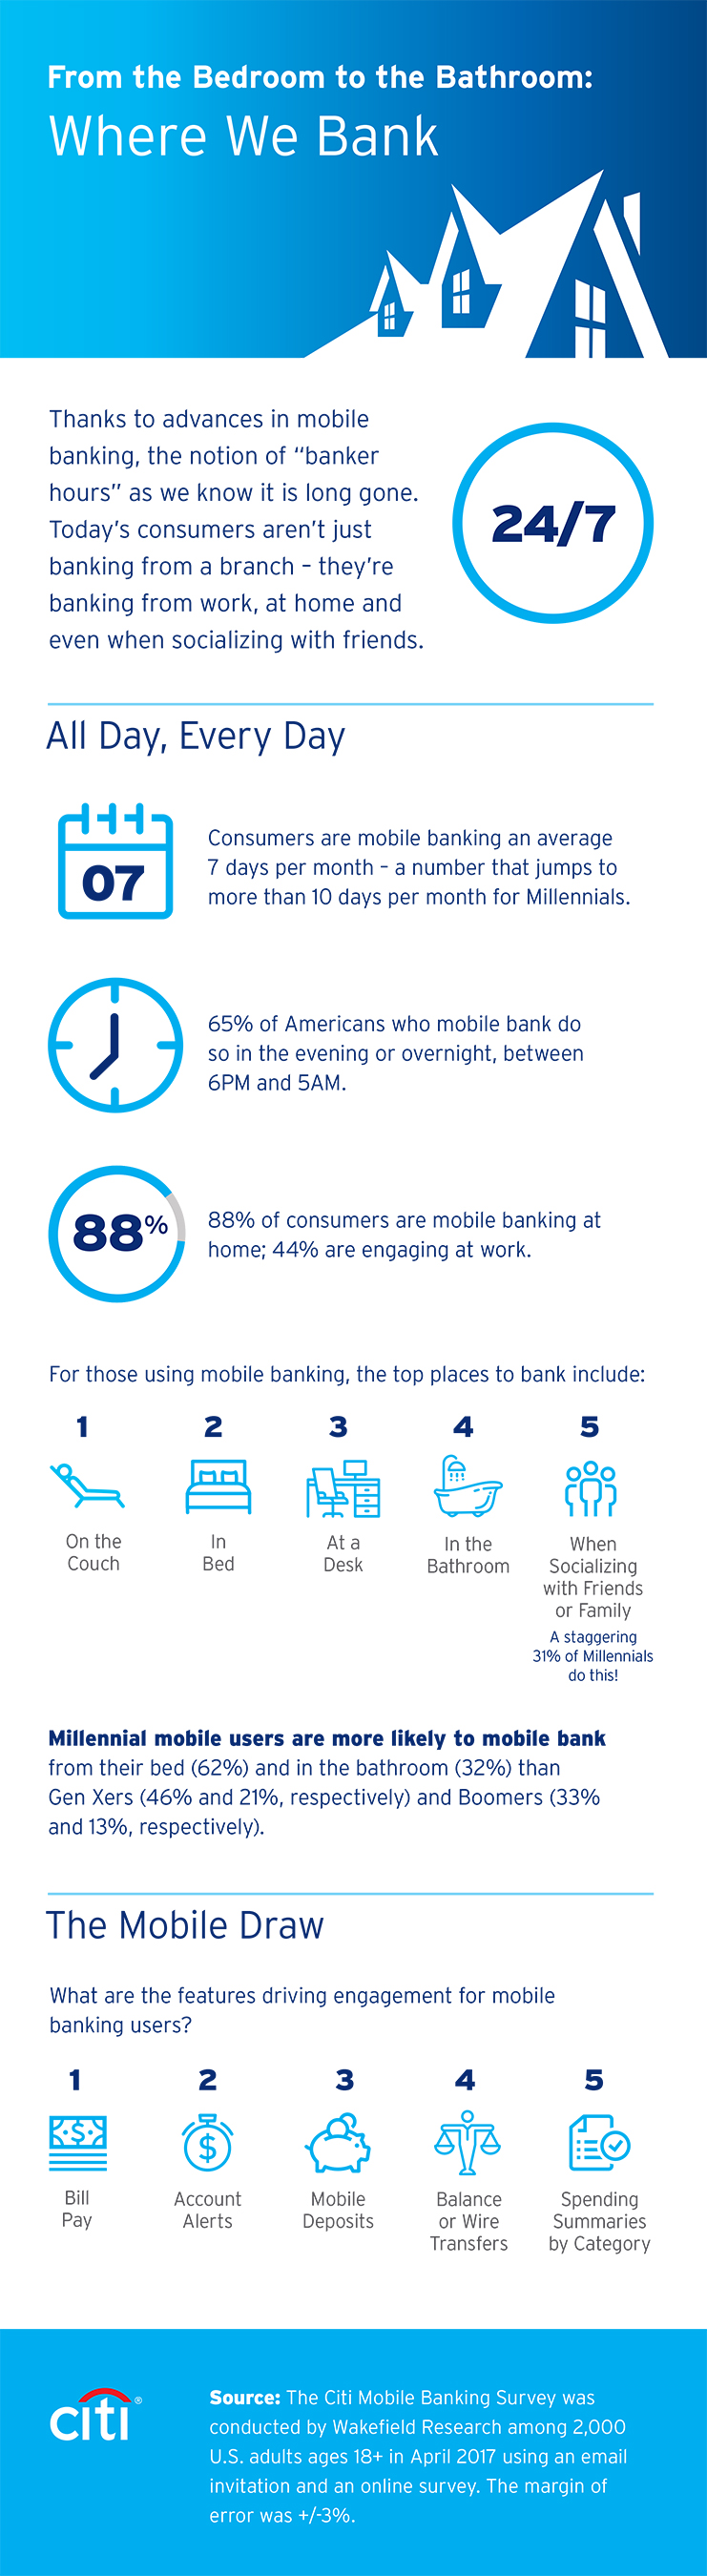 Citi's 2017 Mobile Banking Study demonstrates that today's digitally-savvy consumers are banking anywhere and everywhere. Consumers are leveraging mobile banking like Citi's to bank from work, from home and when socializing.